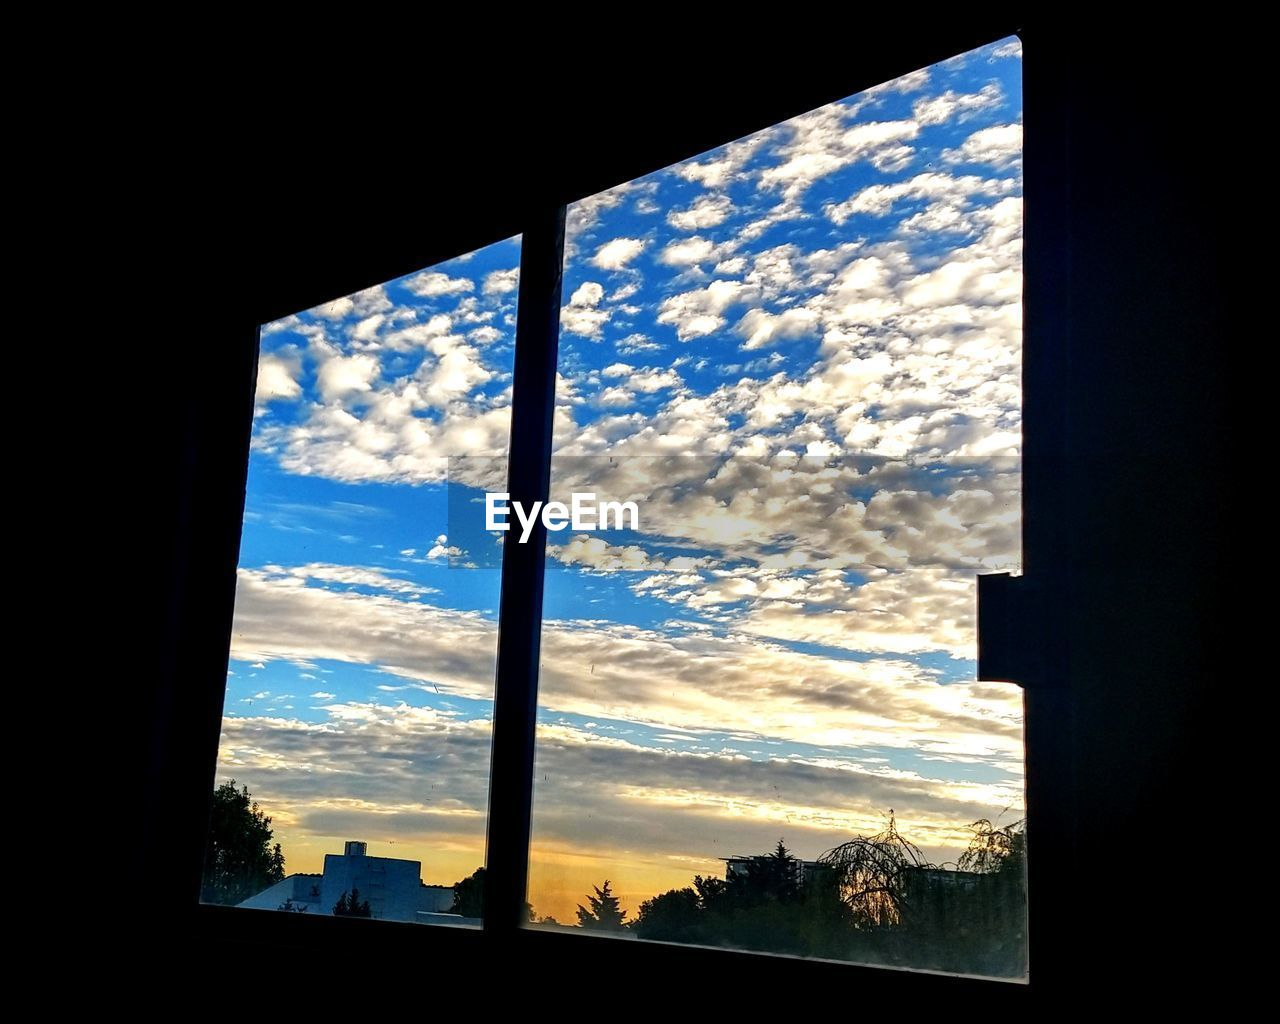 sky, cloud - sky, window, architecture, built structure, nature, silhouette, no people, glass - material, sunset, building exterior, tree, building, transparent, beauty in nature, outdoors, day, low angle view, sunlight